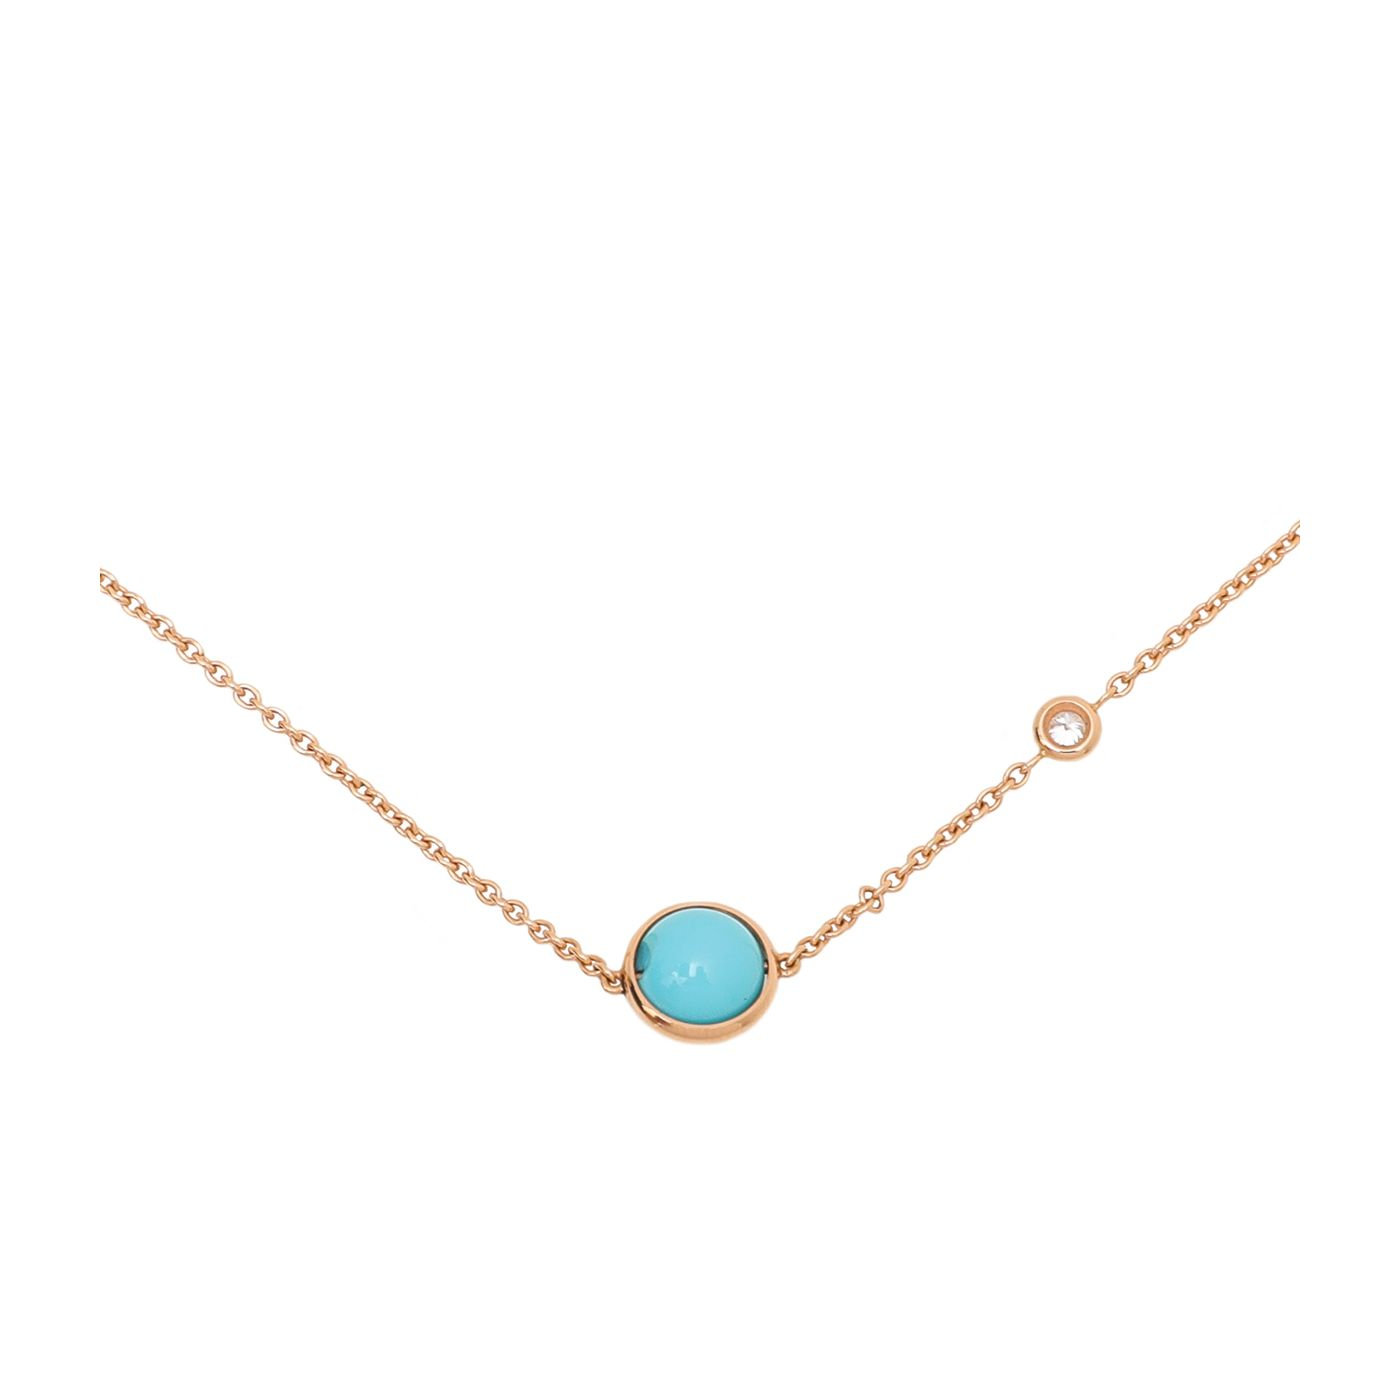 Piaget 18K Rose Gold Diamond Turquoise Pendant Possession Necklace